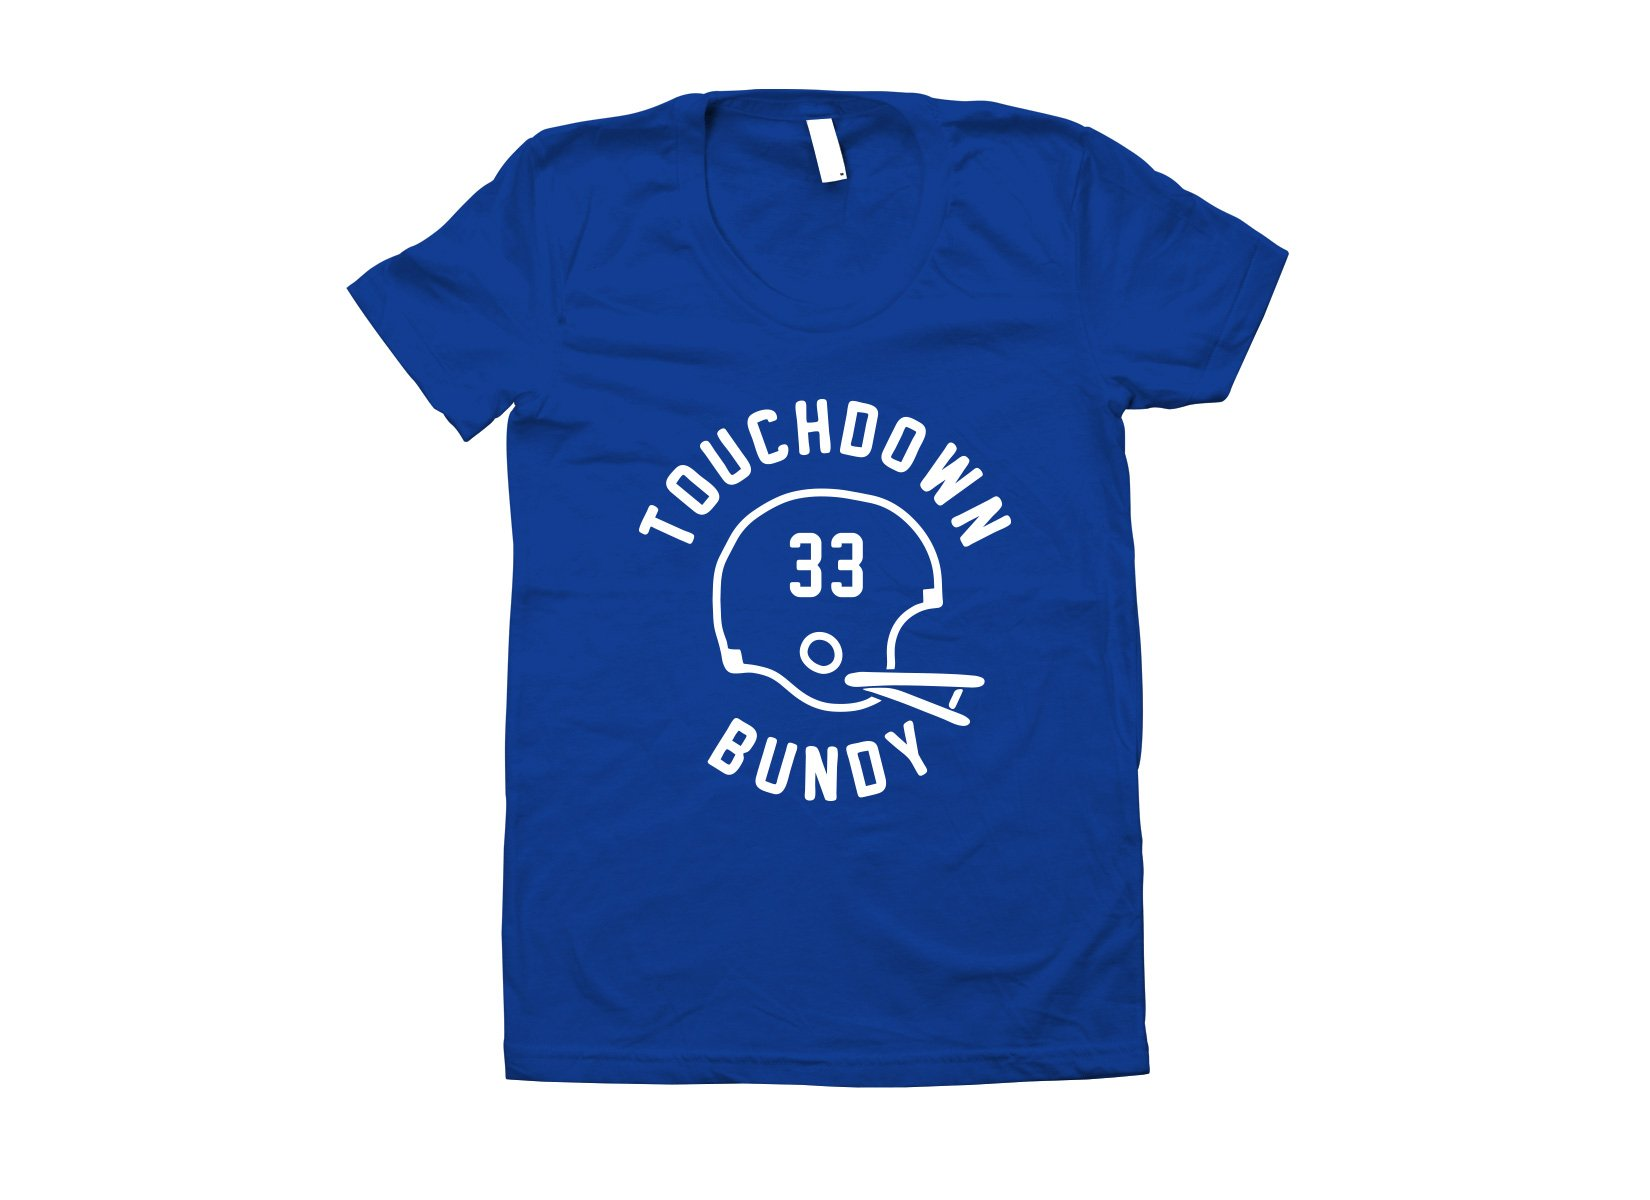 Touchdown Bundy on Juniors T-Shirt